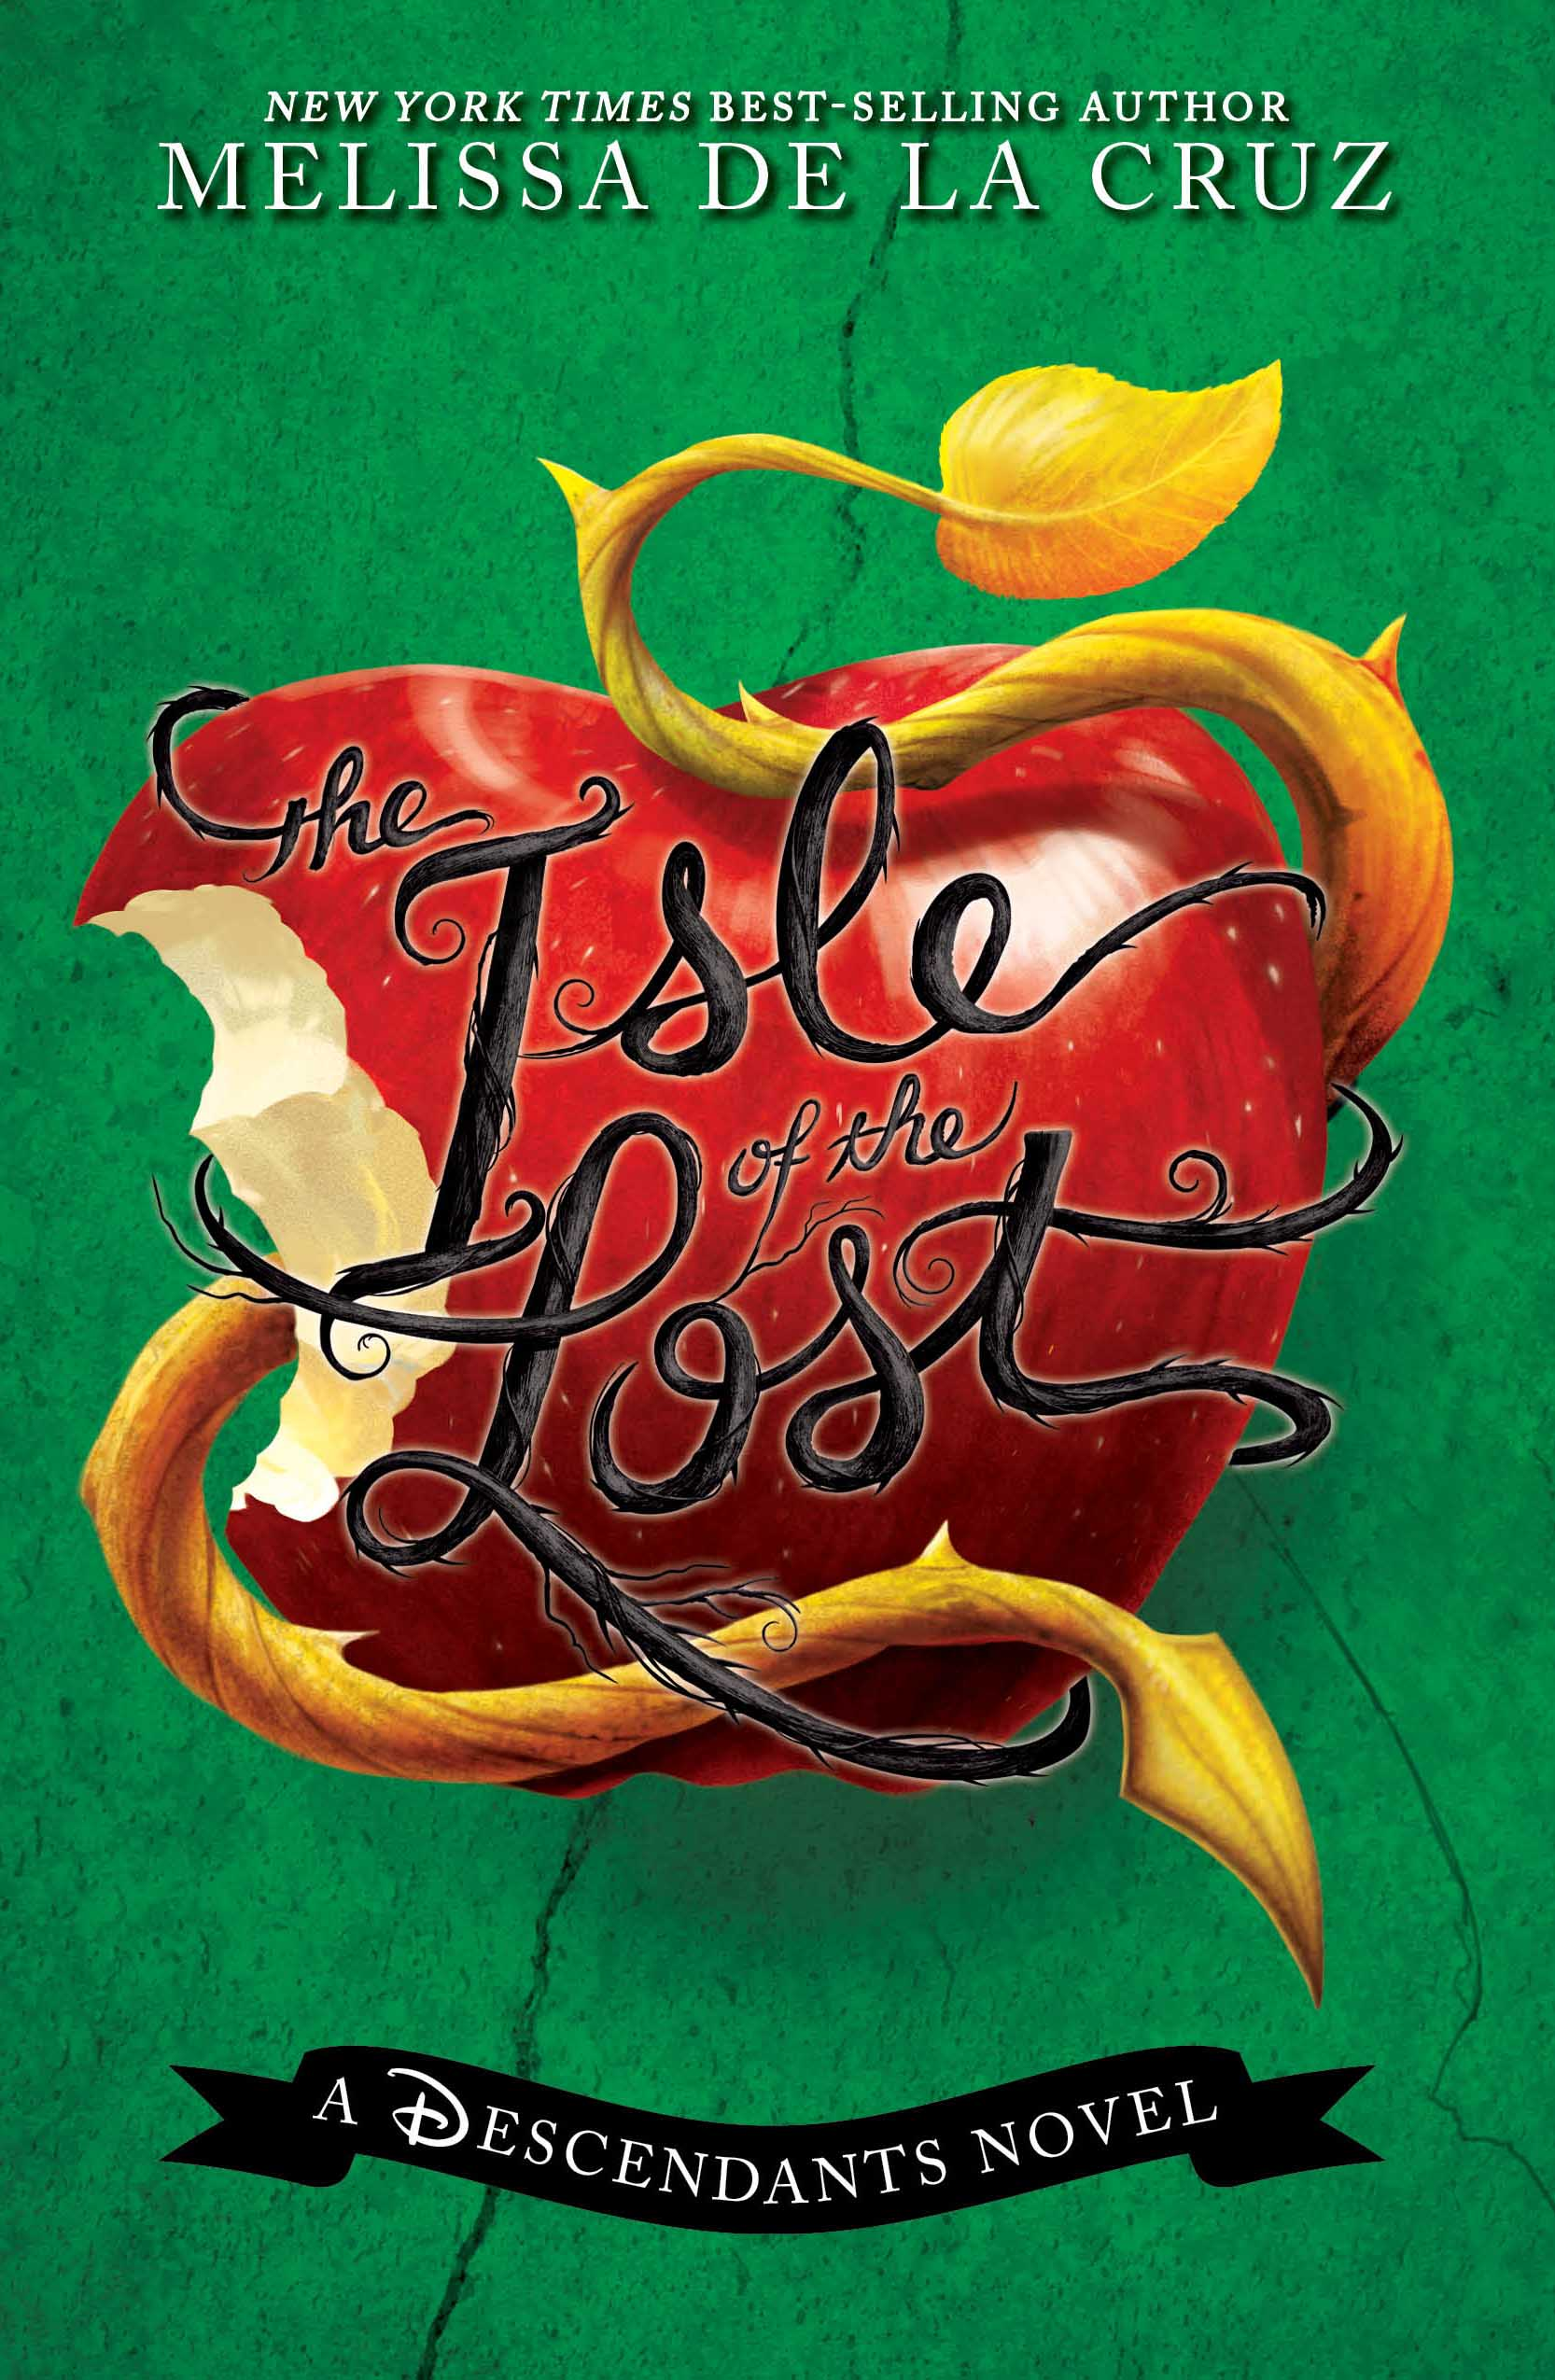 An Interview with the Author of The Isle of the Lost: A Descendants Novel